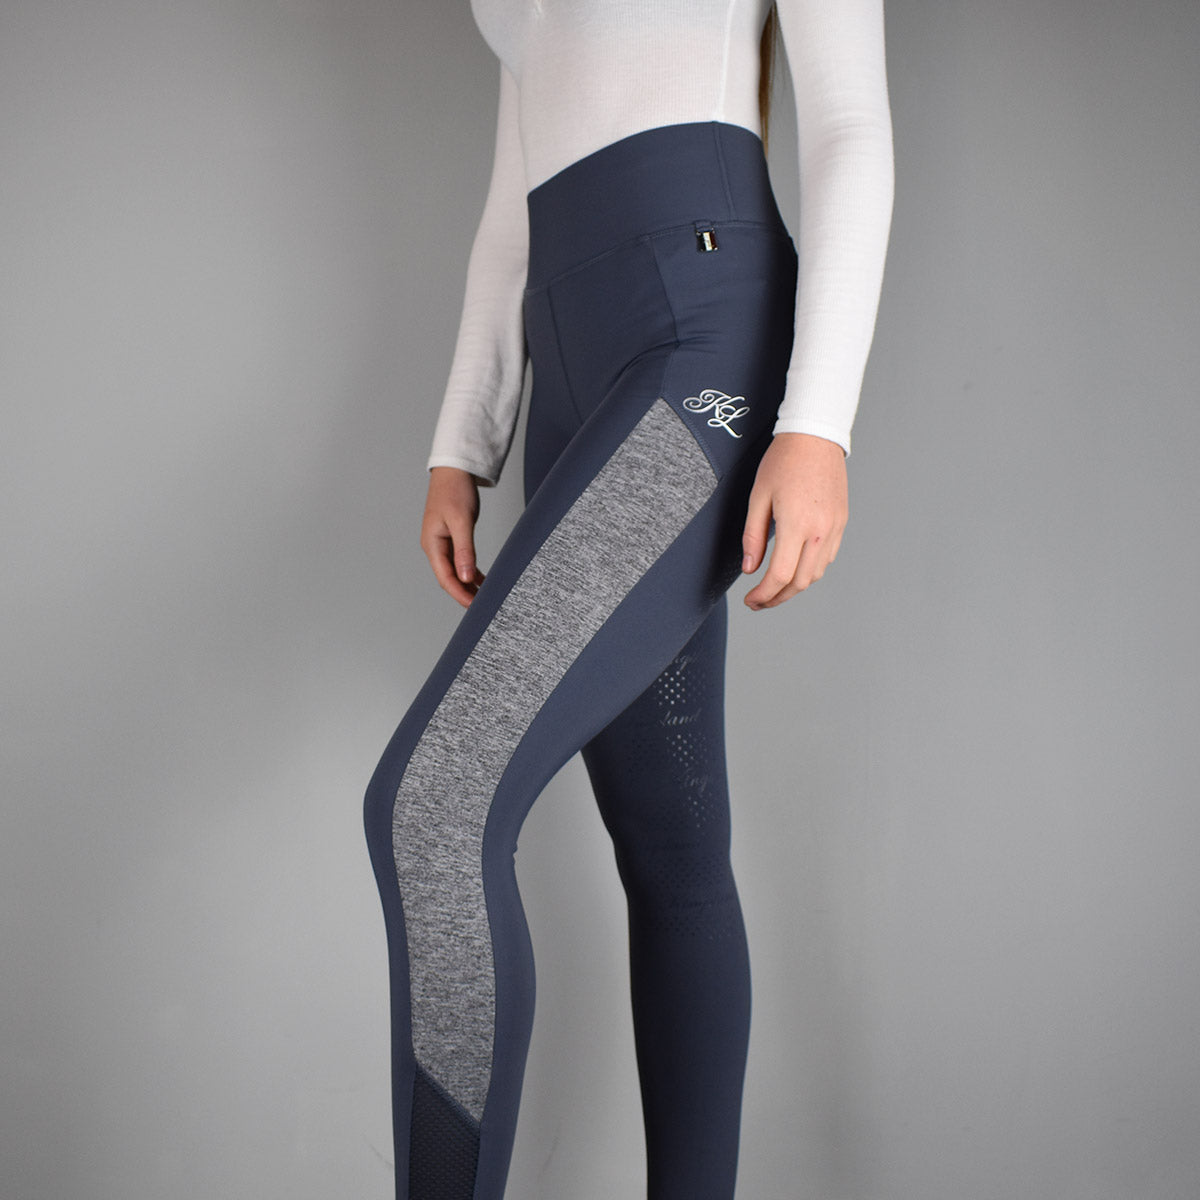 Kingsland Karina FSS Riding Tights in Blue Ombre